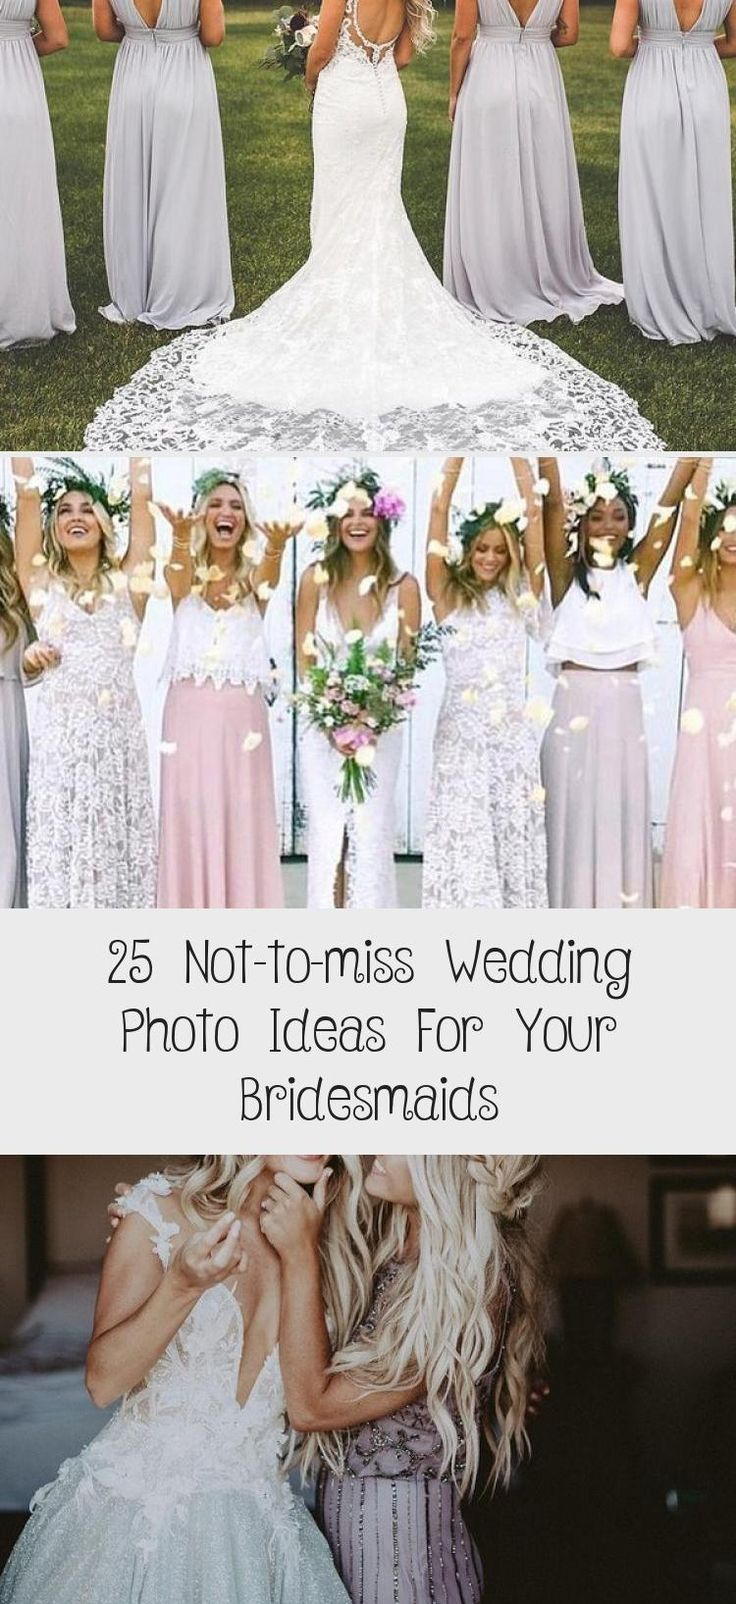 Wedding Photo Ideas For Your Bridesmaids  #wedding #weddingideas #weddingphotos #deerpearlflowers #BridesmaidDressesSequin #TealBridesmaidDresses #SilverBridesmaidDresses #BridesmaidDressesSpring #GrayBridesmaidDresses